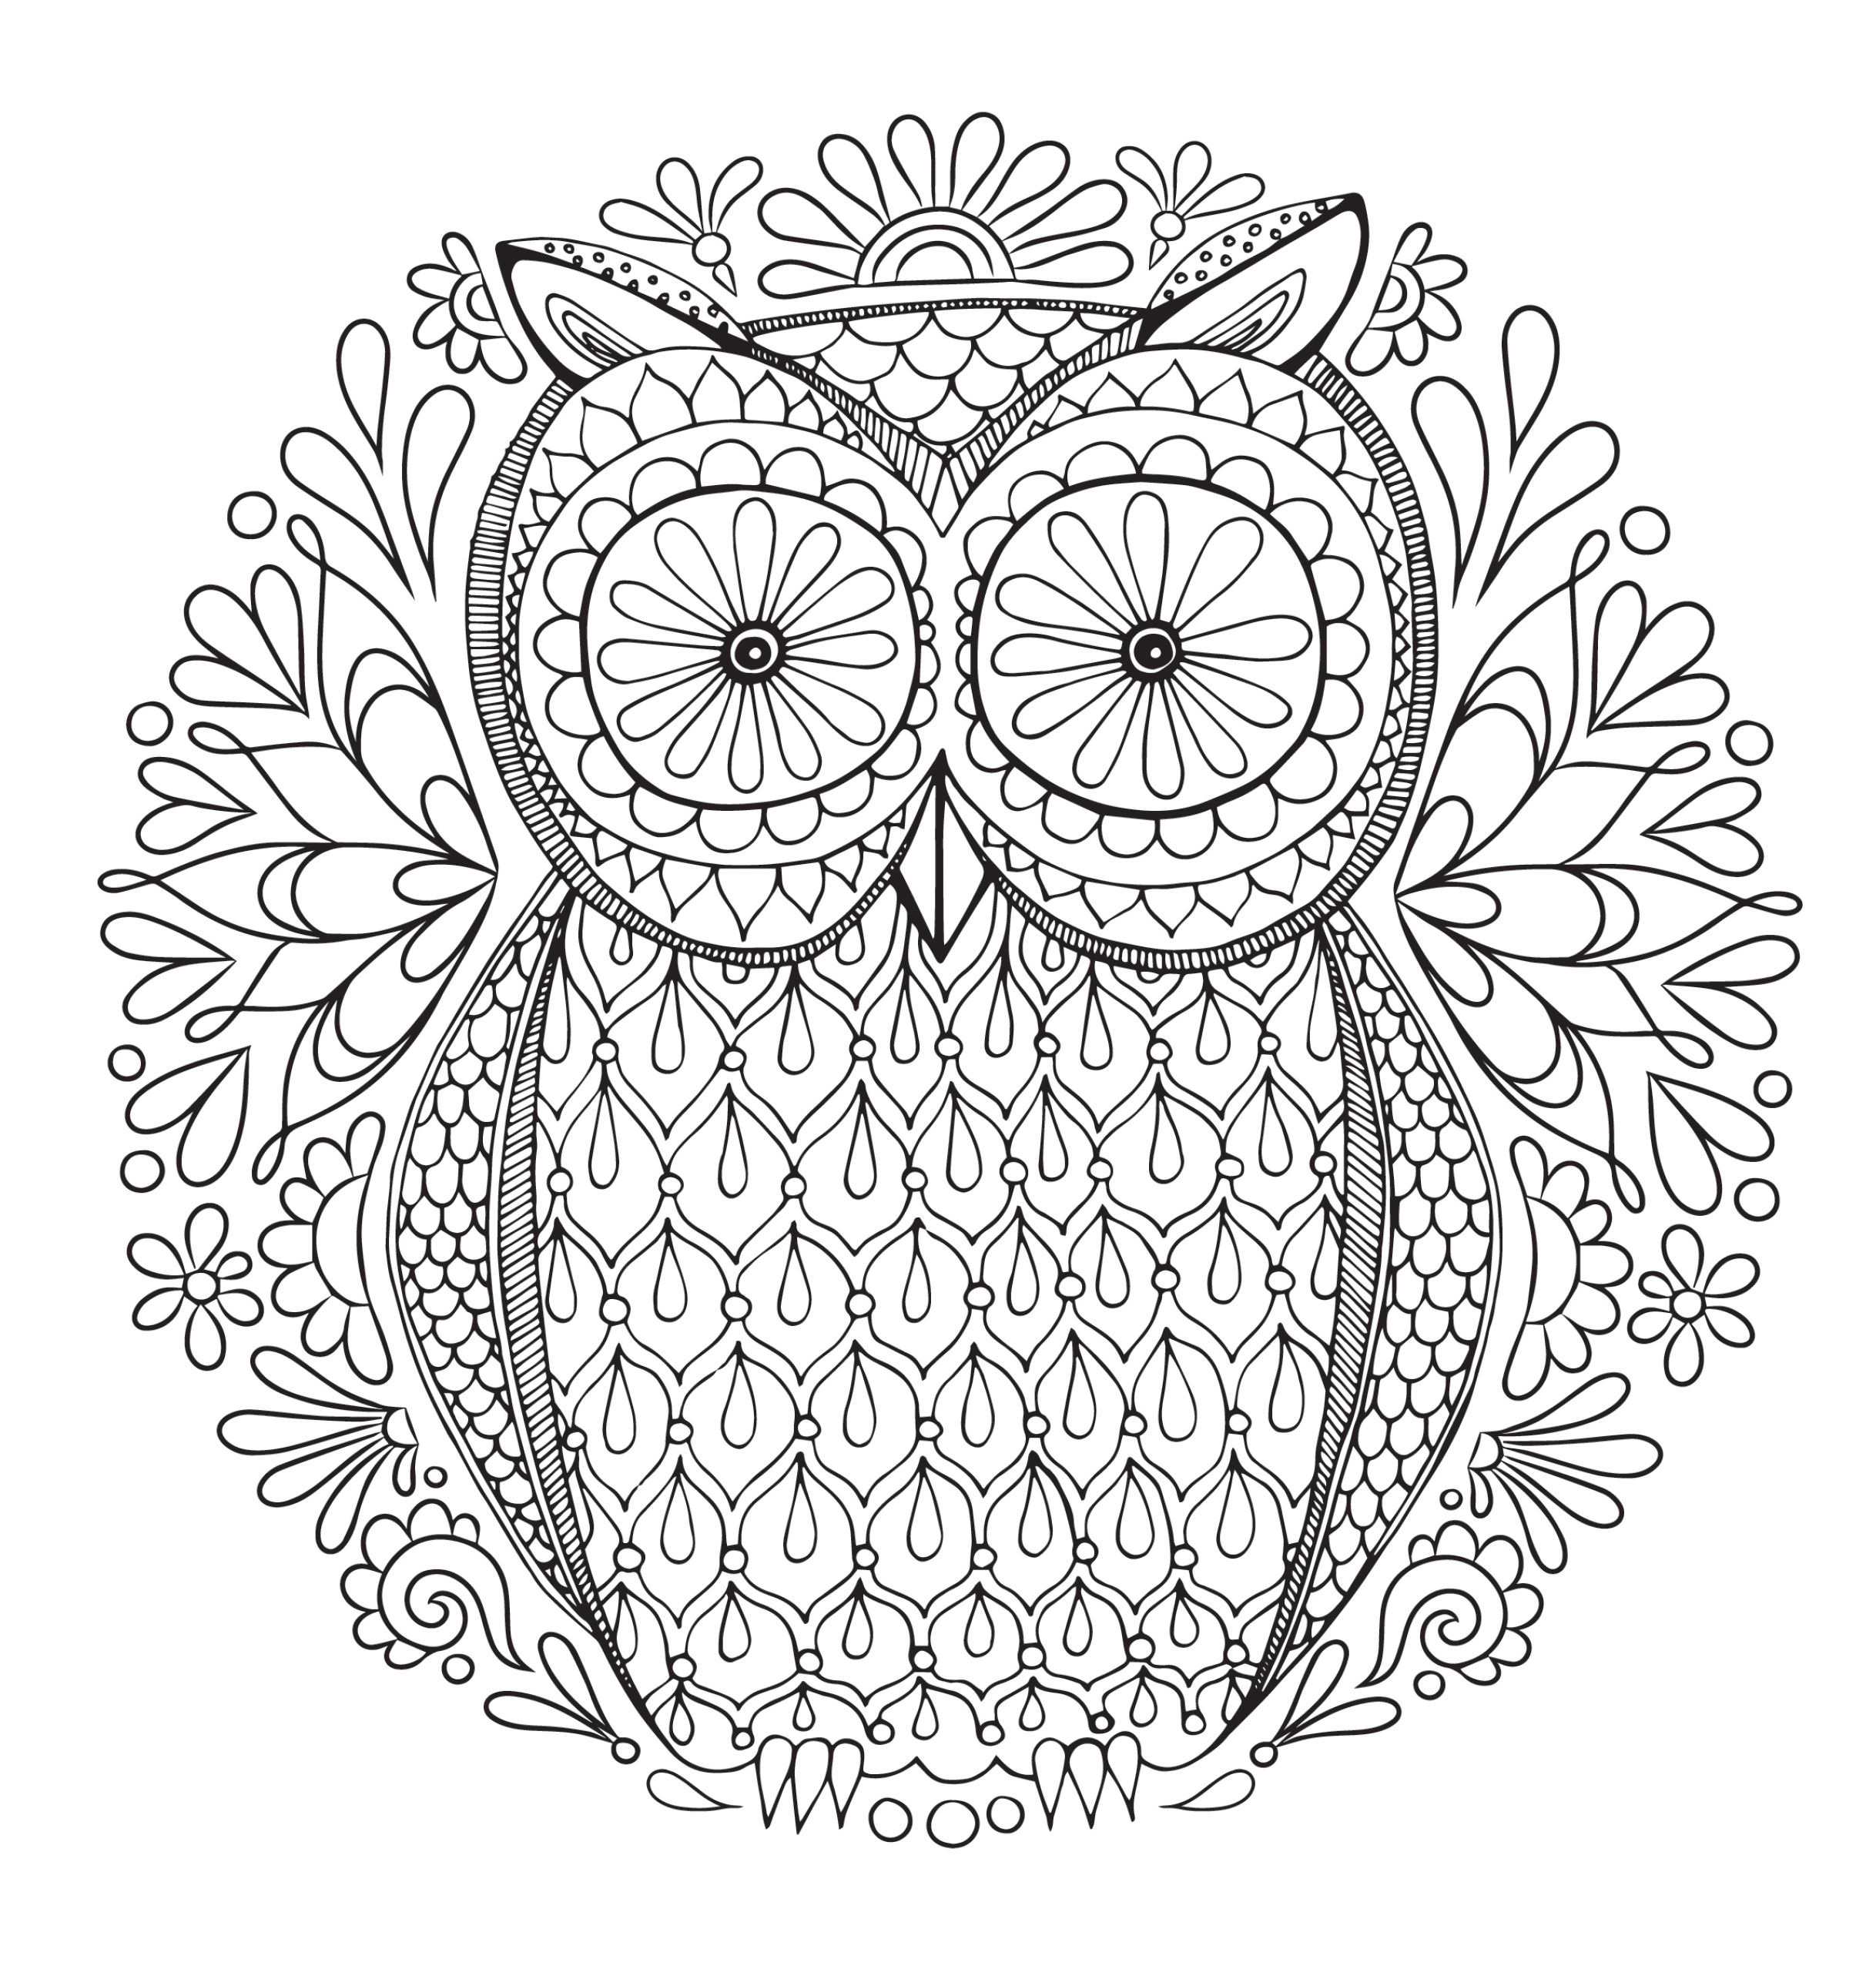 Coloring pages relaxing - Coloring Pages Relaxing 20